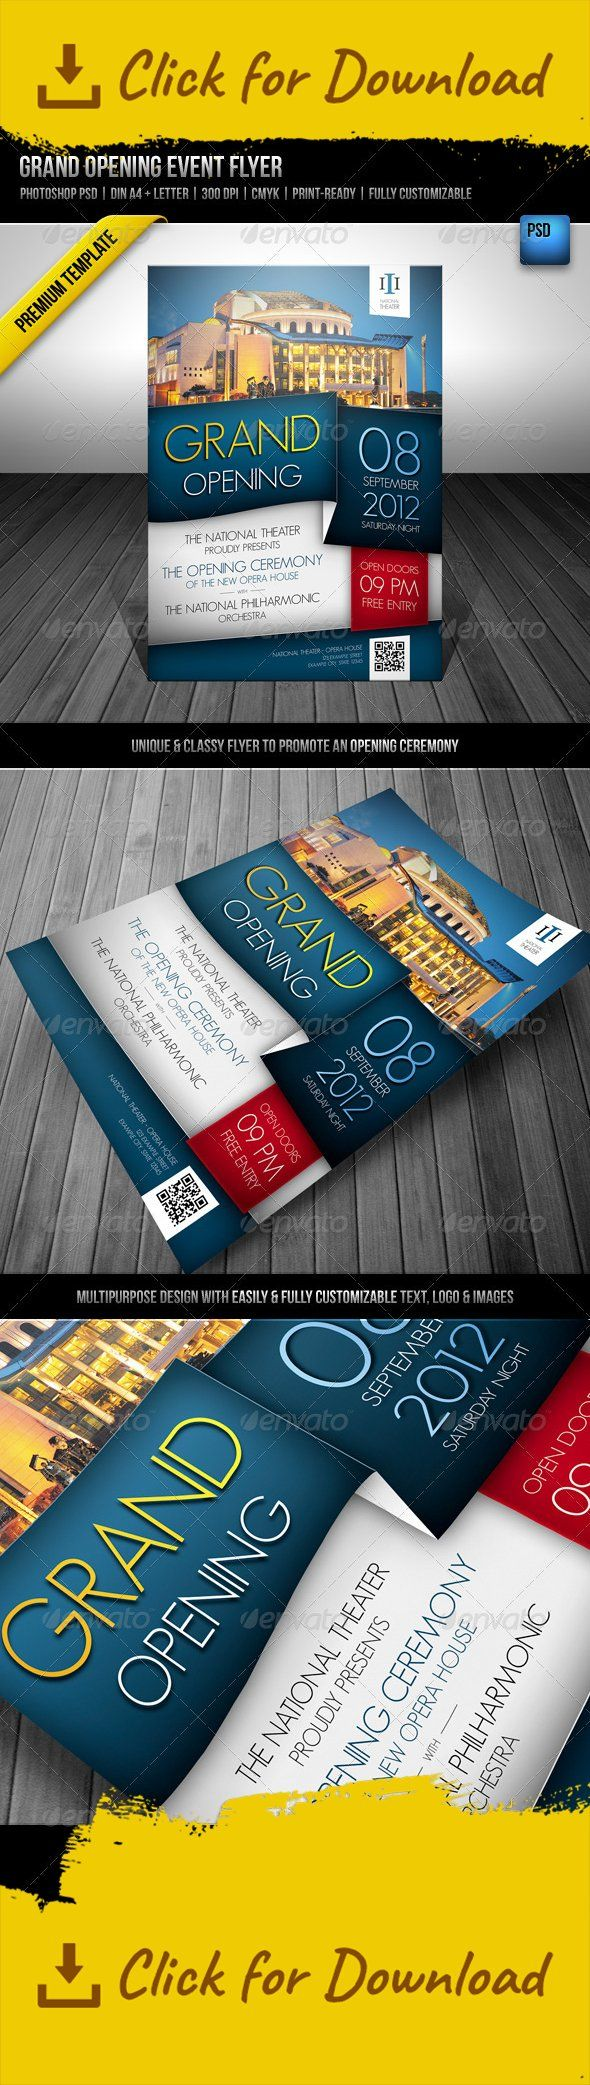 blue, building, celebration, ceremony, classy, code, doors, event, flyer, grand, library, location, multipurpose, national, open, opening, opera, orchestra, party, philharmonic, qr, qr code, red, school, special, theater, theatre, unique, white, yellow  Grand Opening Event Flyer PREMIUM TEMPLATE Content  2 Photoshop PSDs | DIN A4 + Letter format ReadMe File  File Info  Photoshop PSD DIN A4  210 mm x 297 mm 220 mm x 307 mm with bleeds   Letter   8.5 in x 11.0 in 9.0 in x 11.5 in with bleeds…